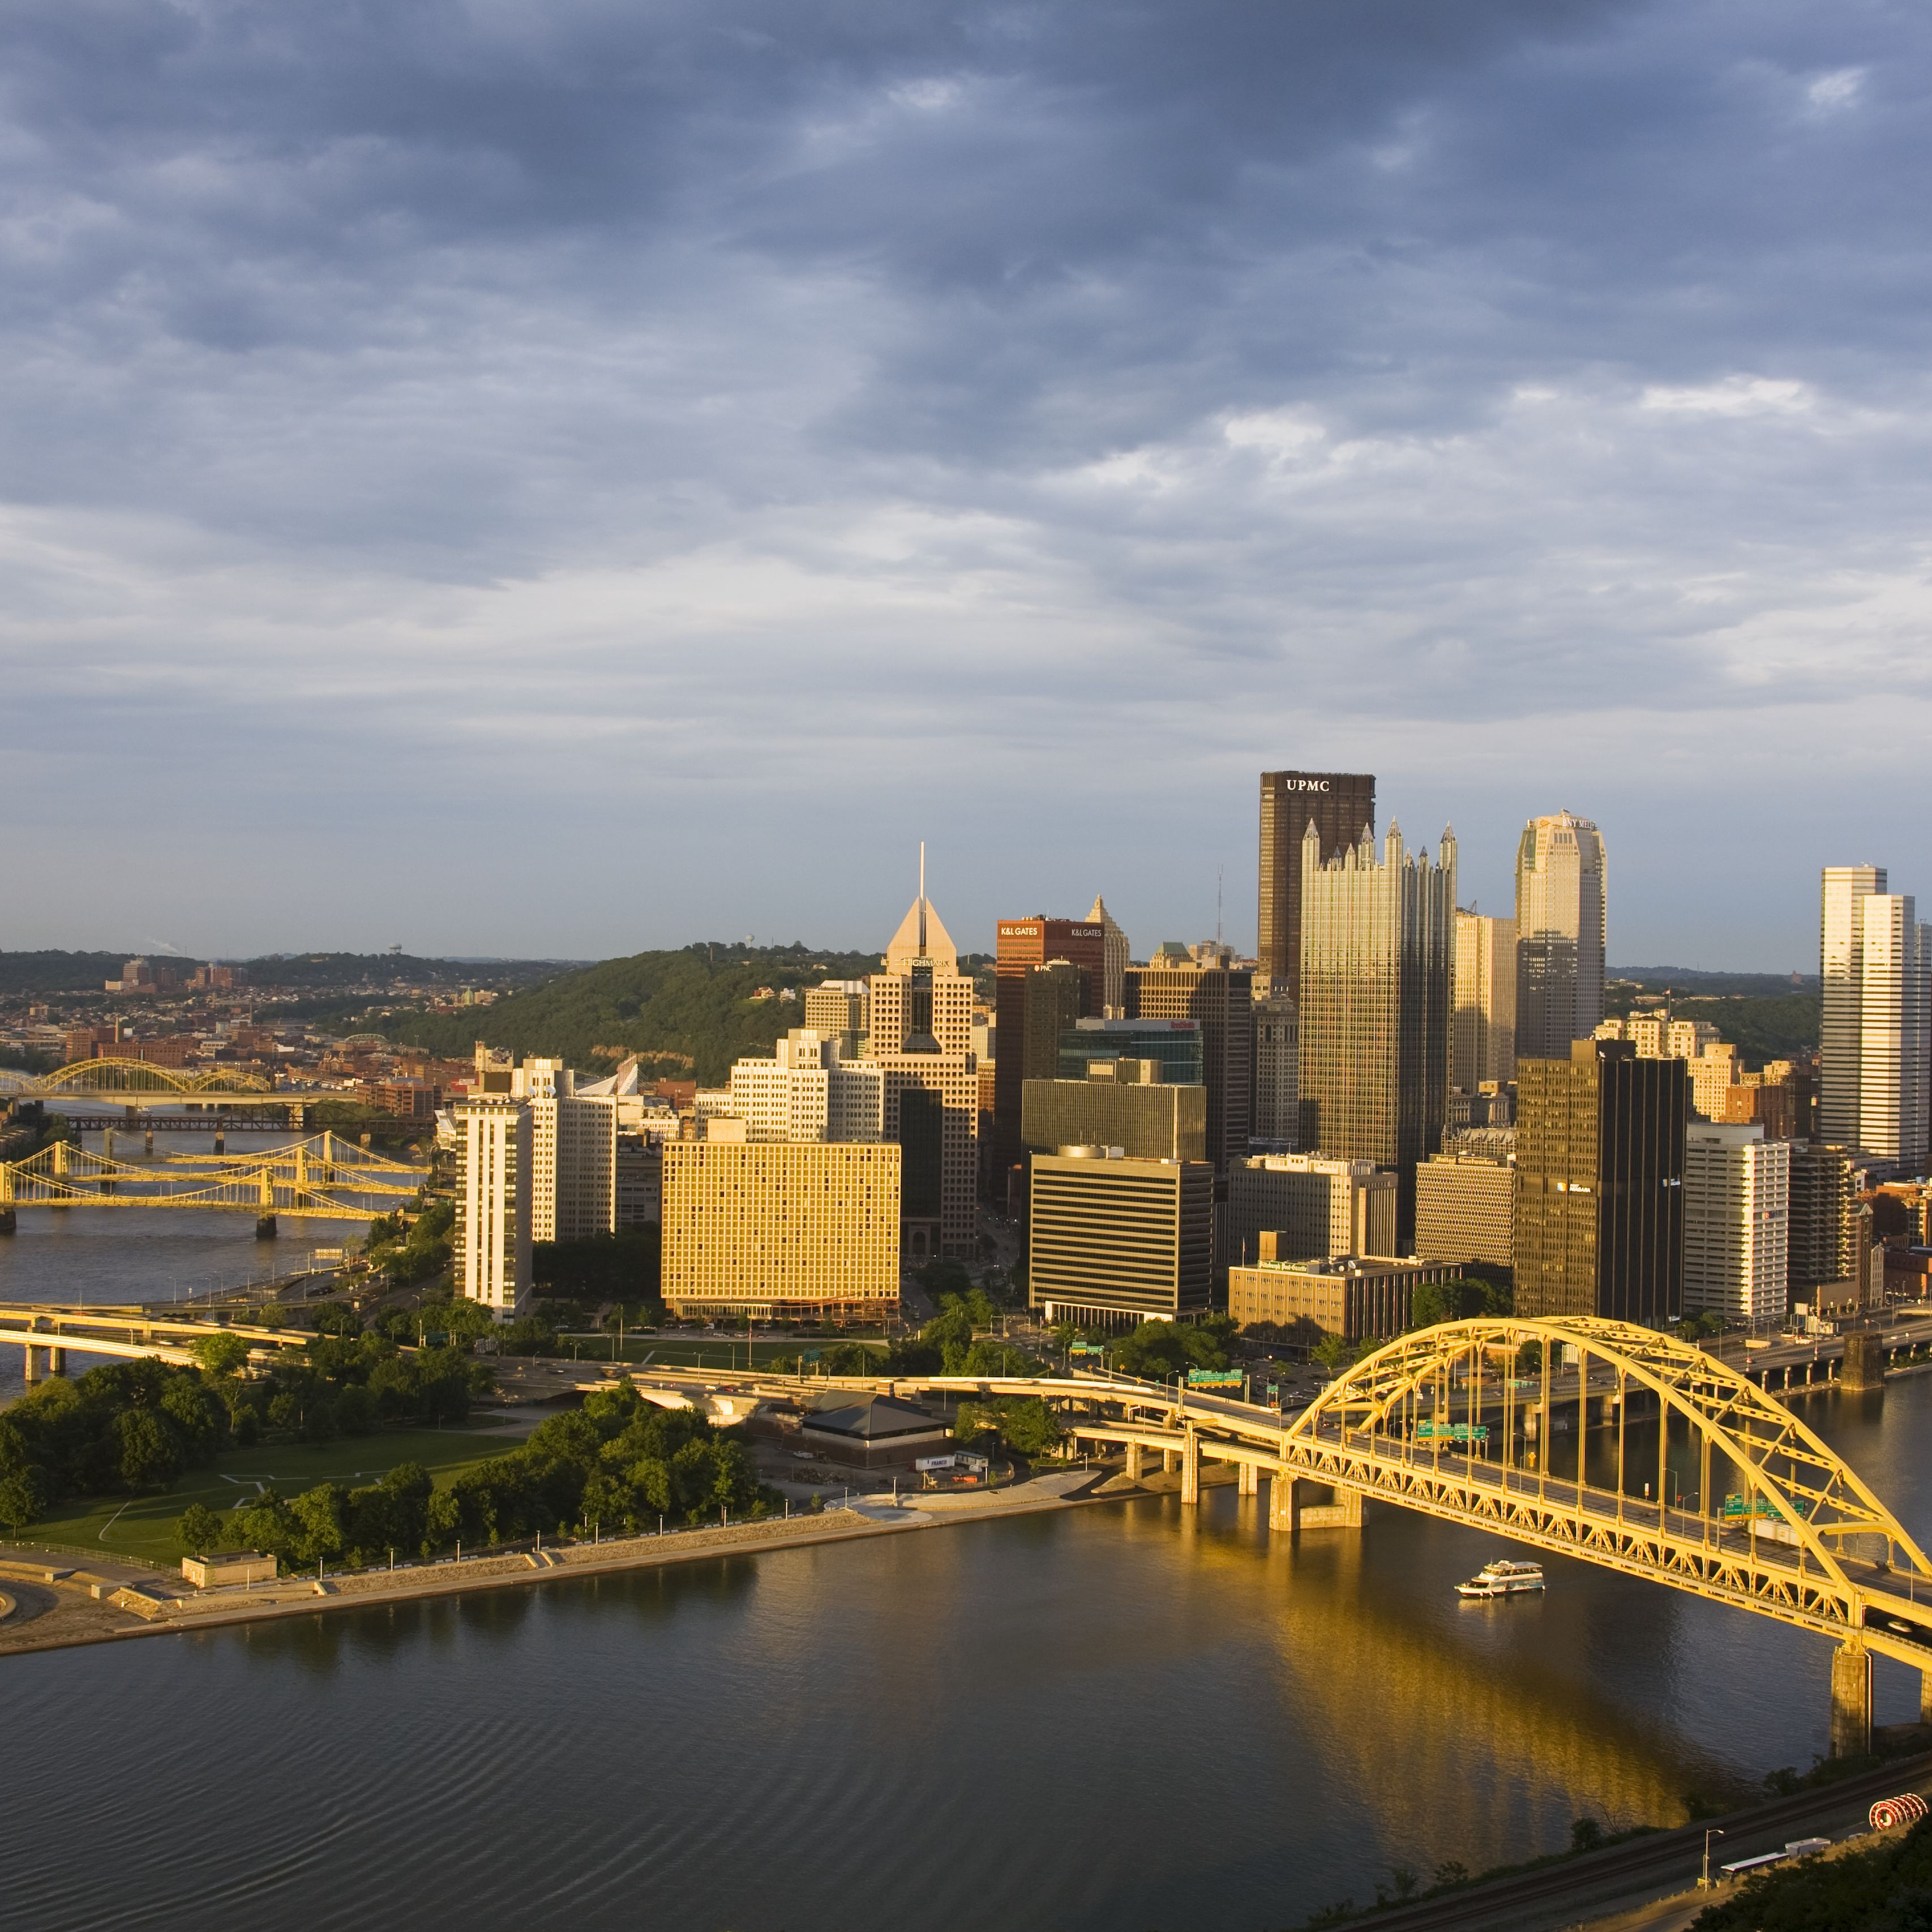 Pittsburgh's Mount Washington: Inclines and Overlooks